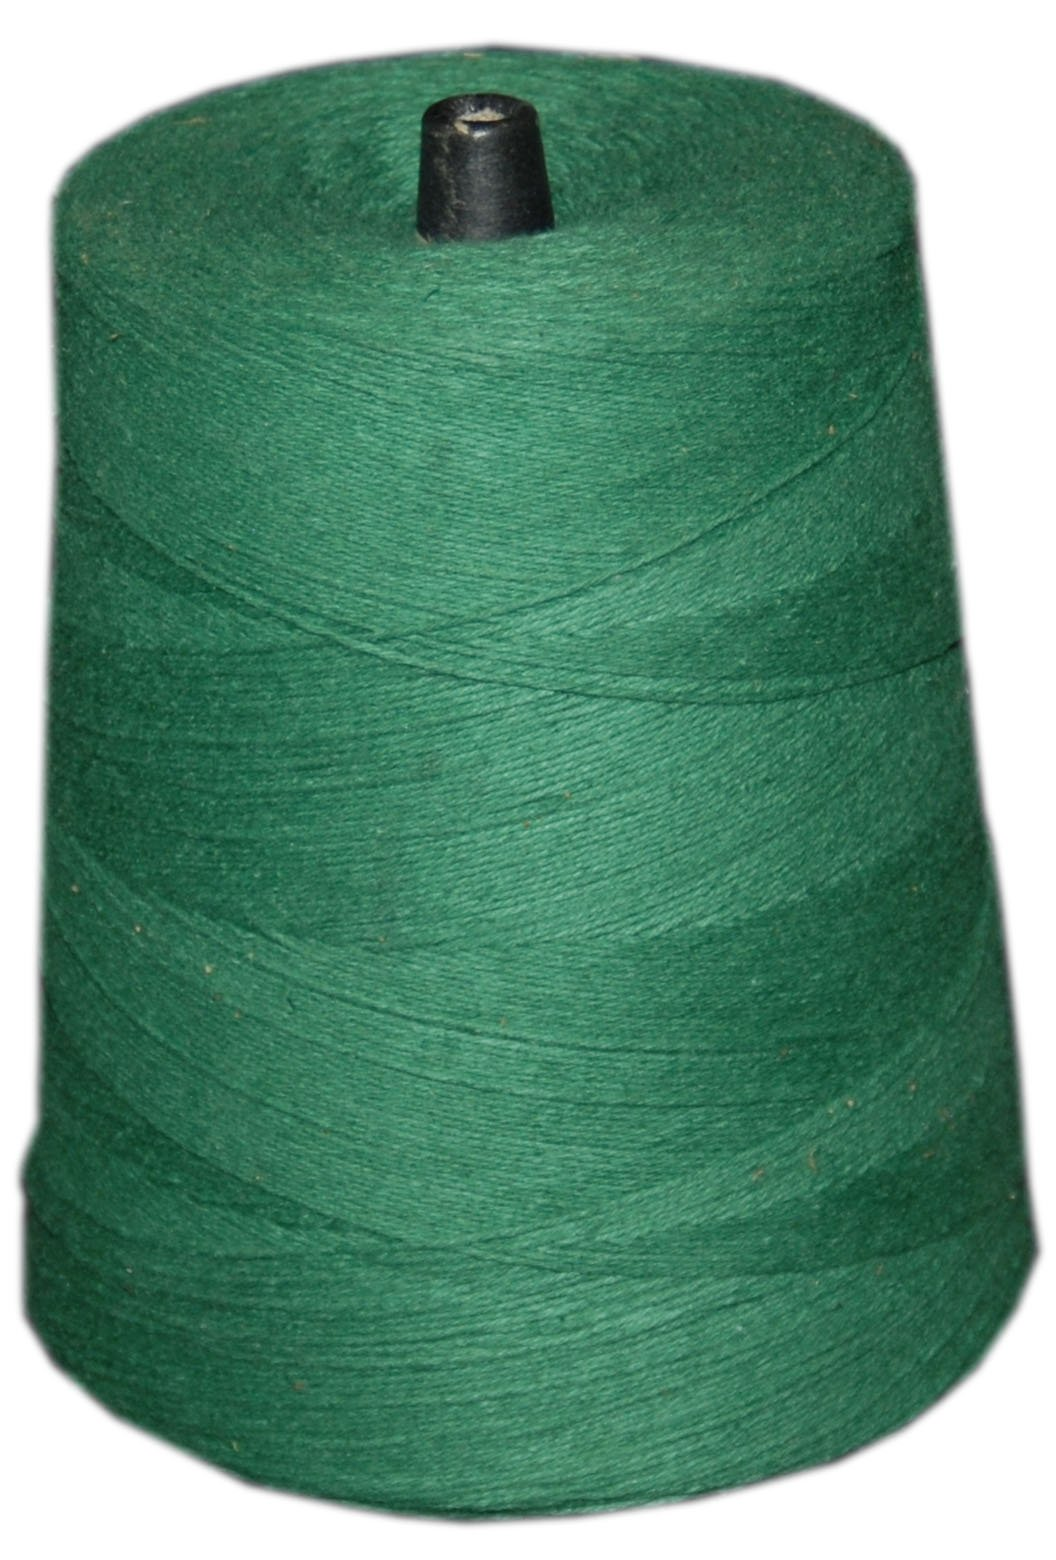 T.W Evans Cordage 07-048 4 Poly Cotton Twine 2-Pound Cone, 9600-Feet, Green